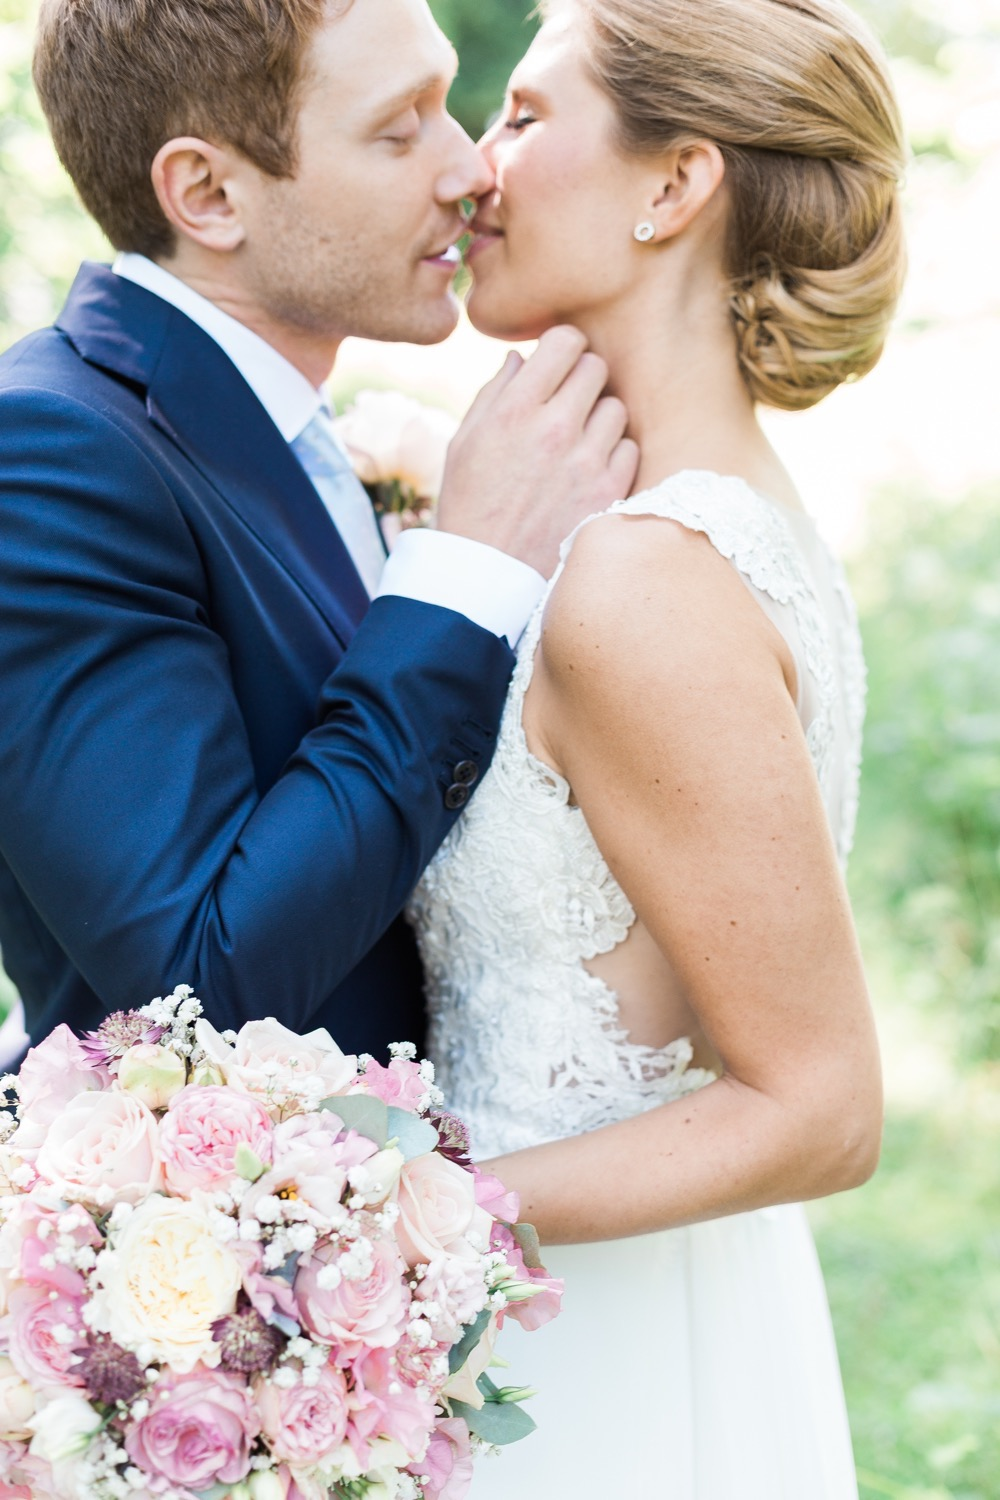 elegant swedish wedding by emelie petre43